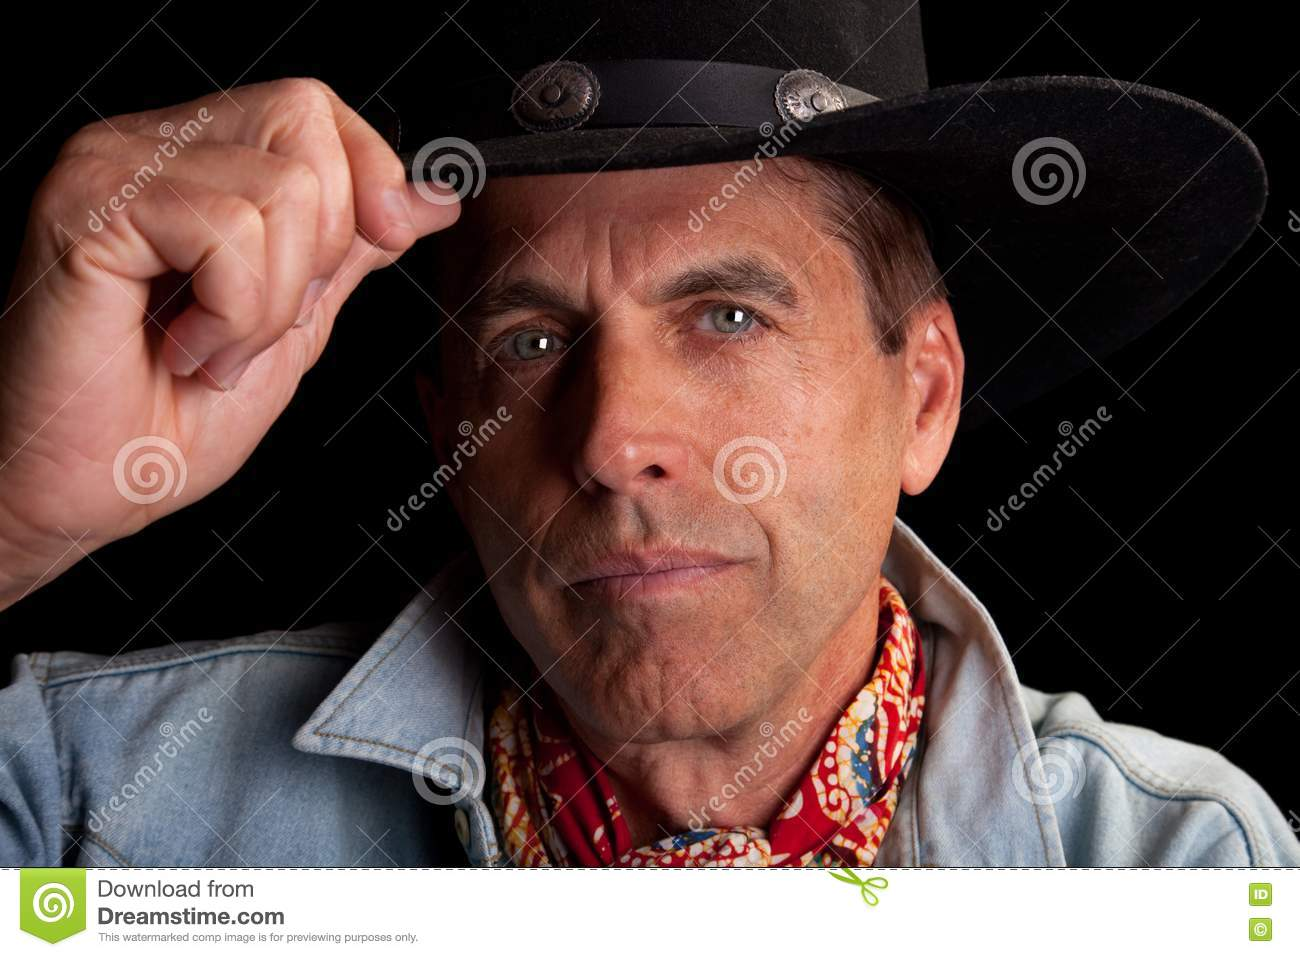 Cowboy tipping his hat stock photography image jpg 1300x957 Cowboy hat  salute eb13bca48185